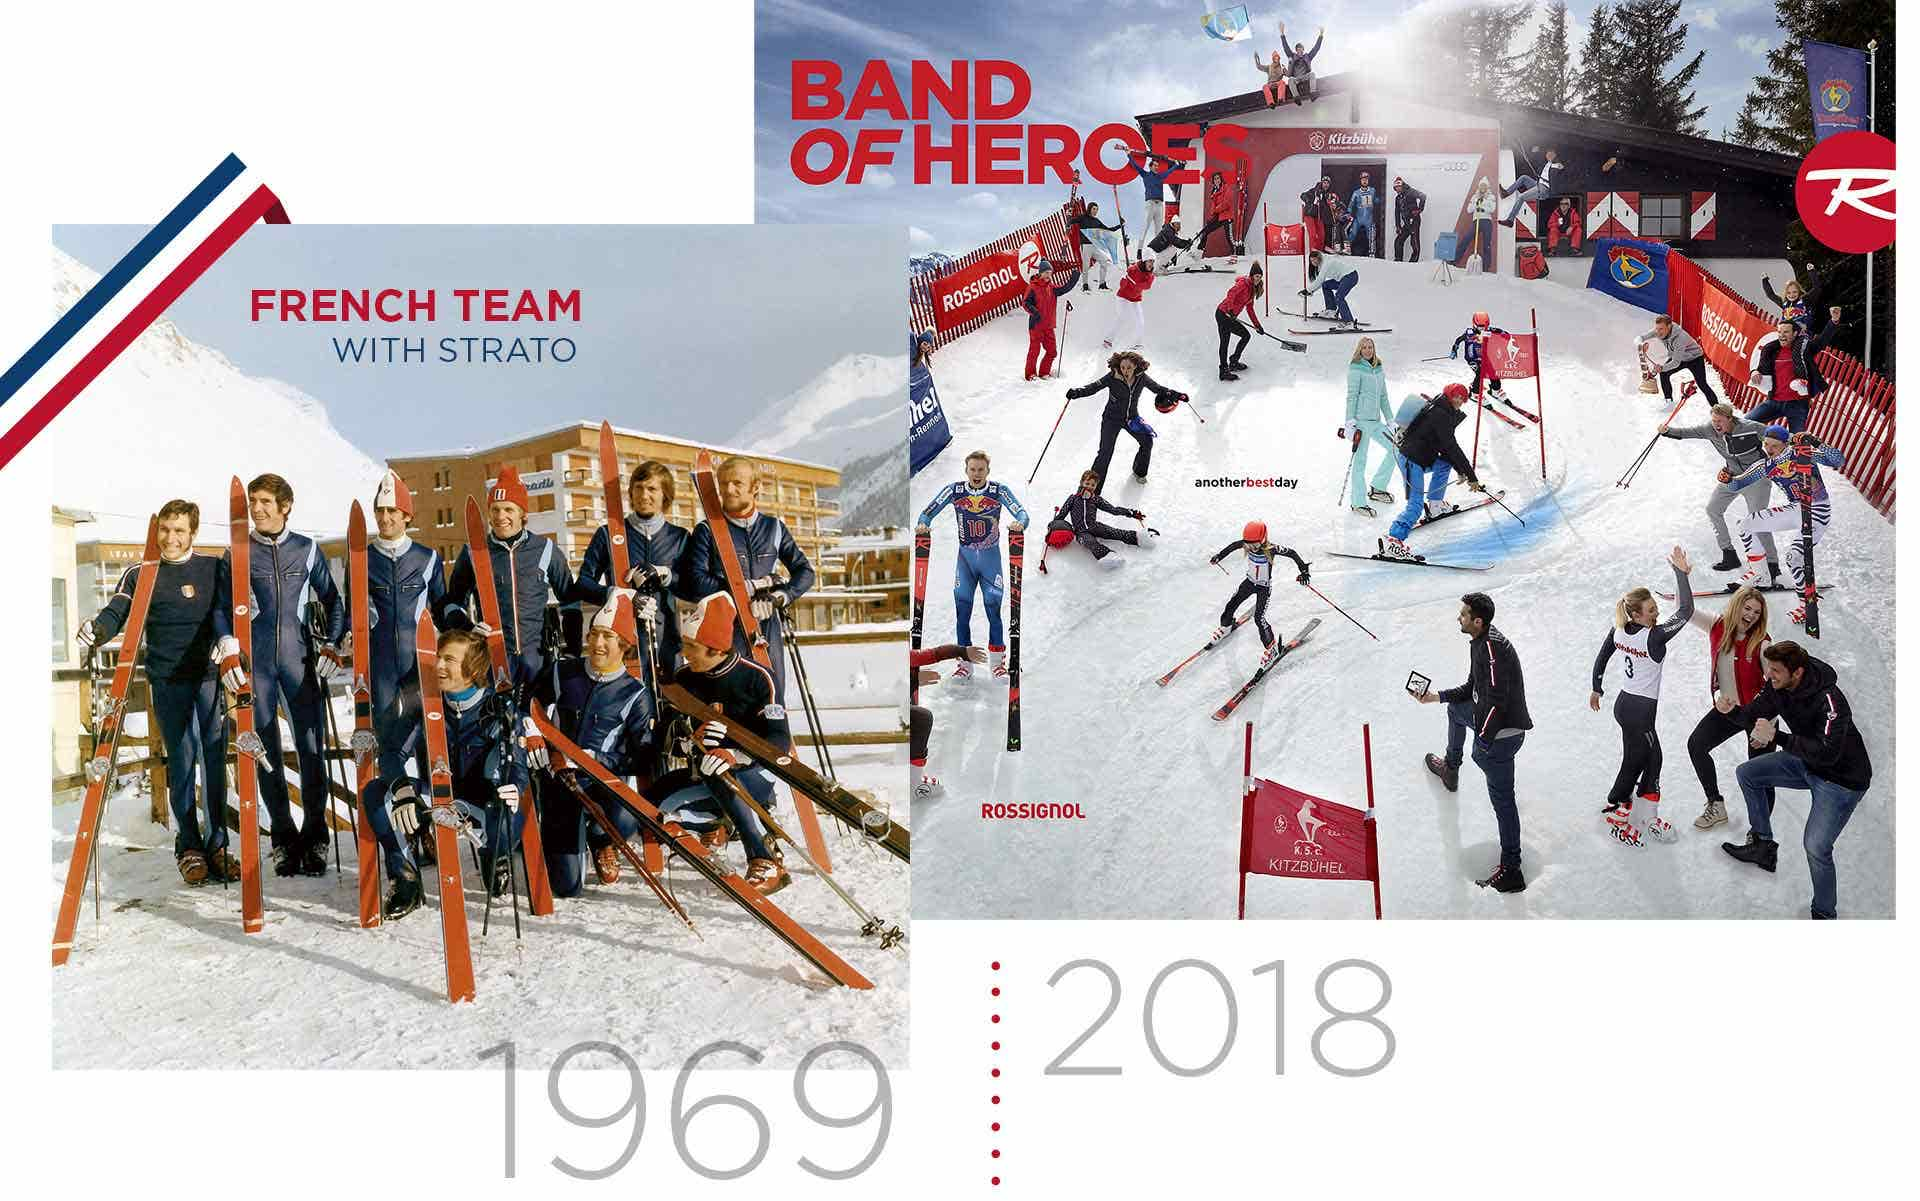 Rossignol history chamions